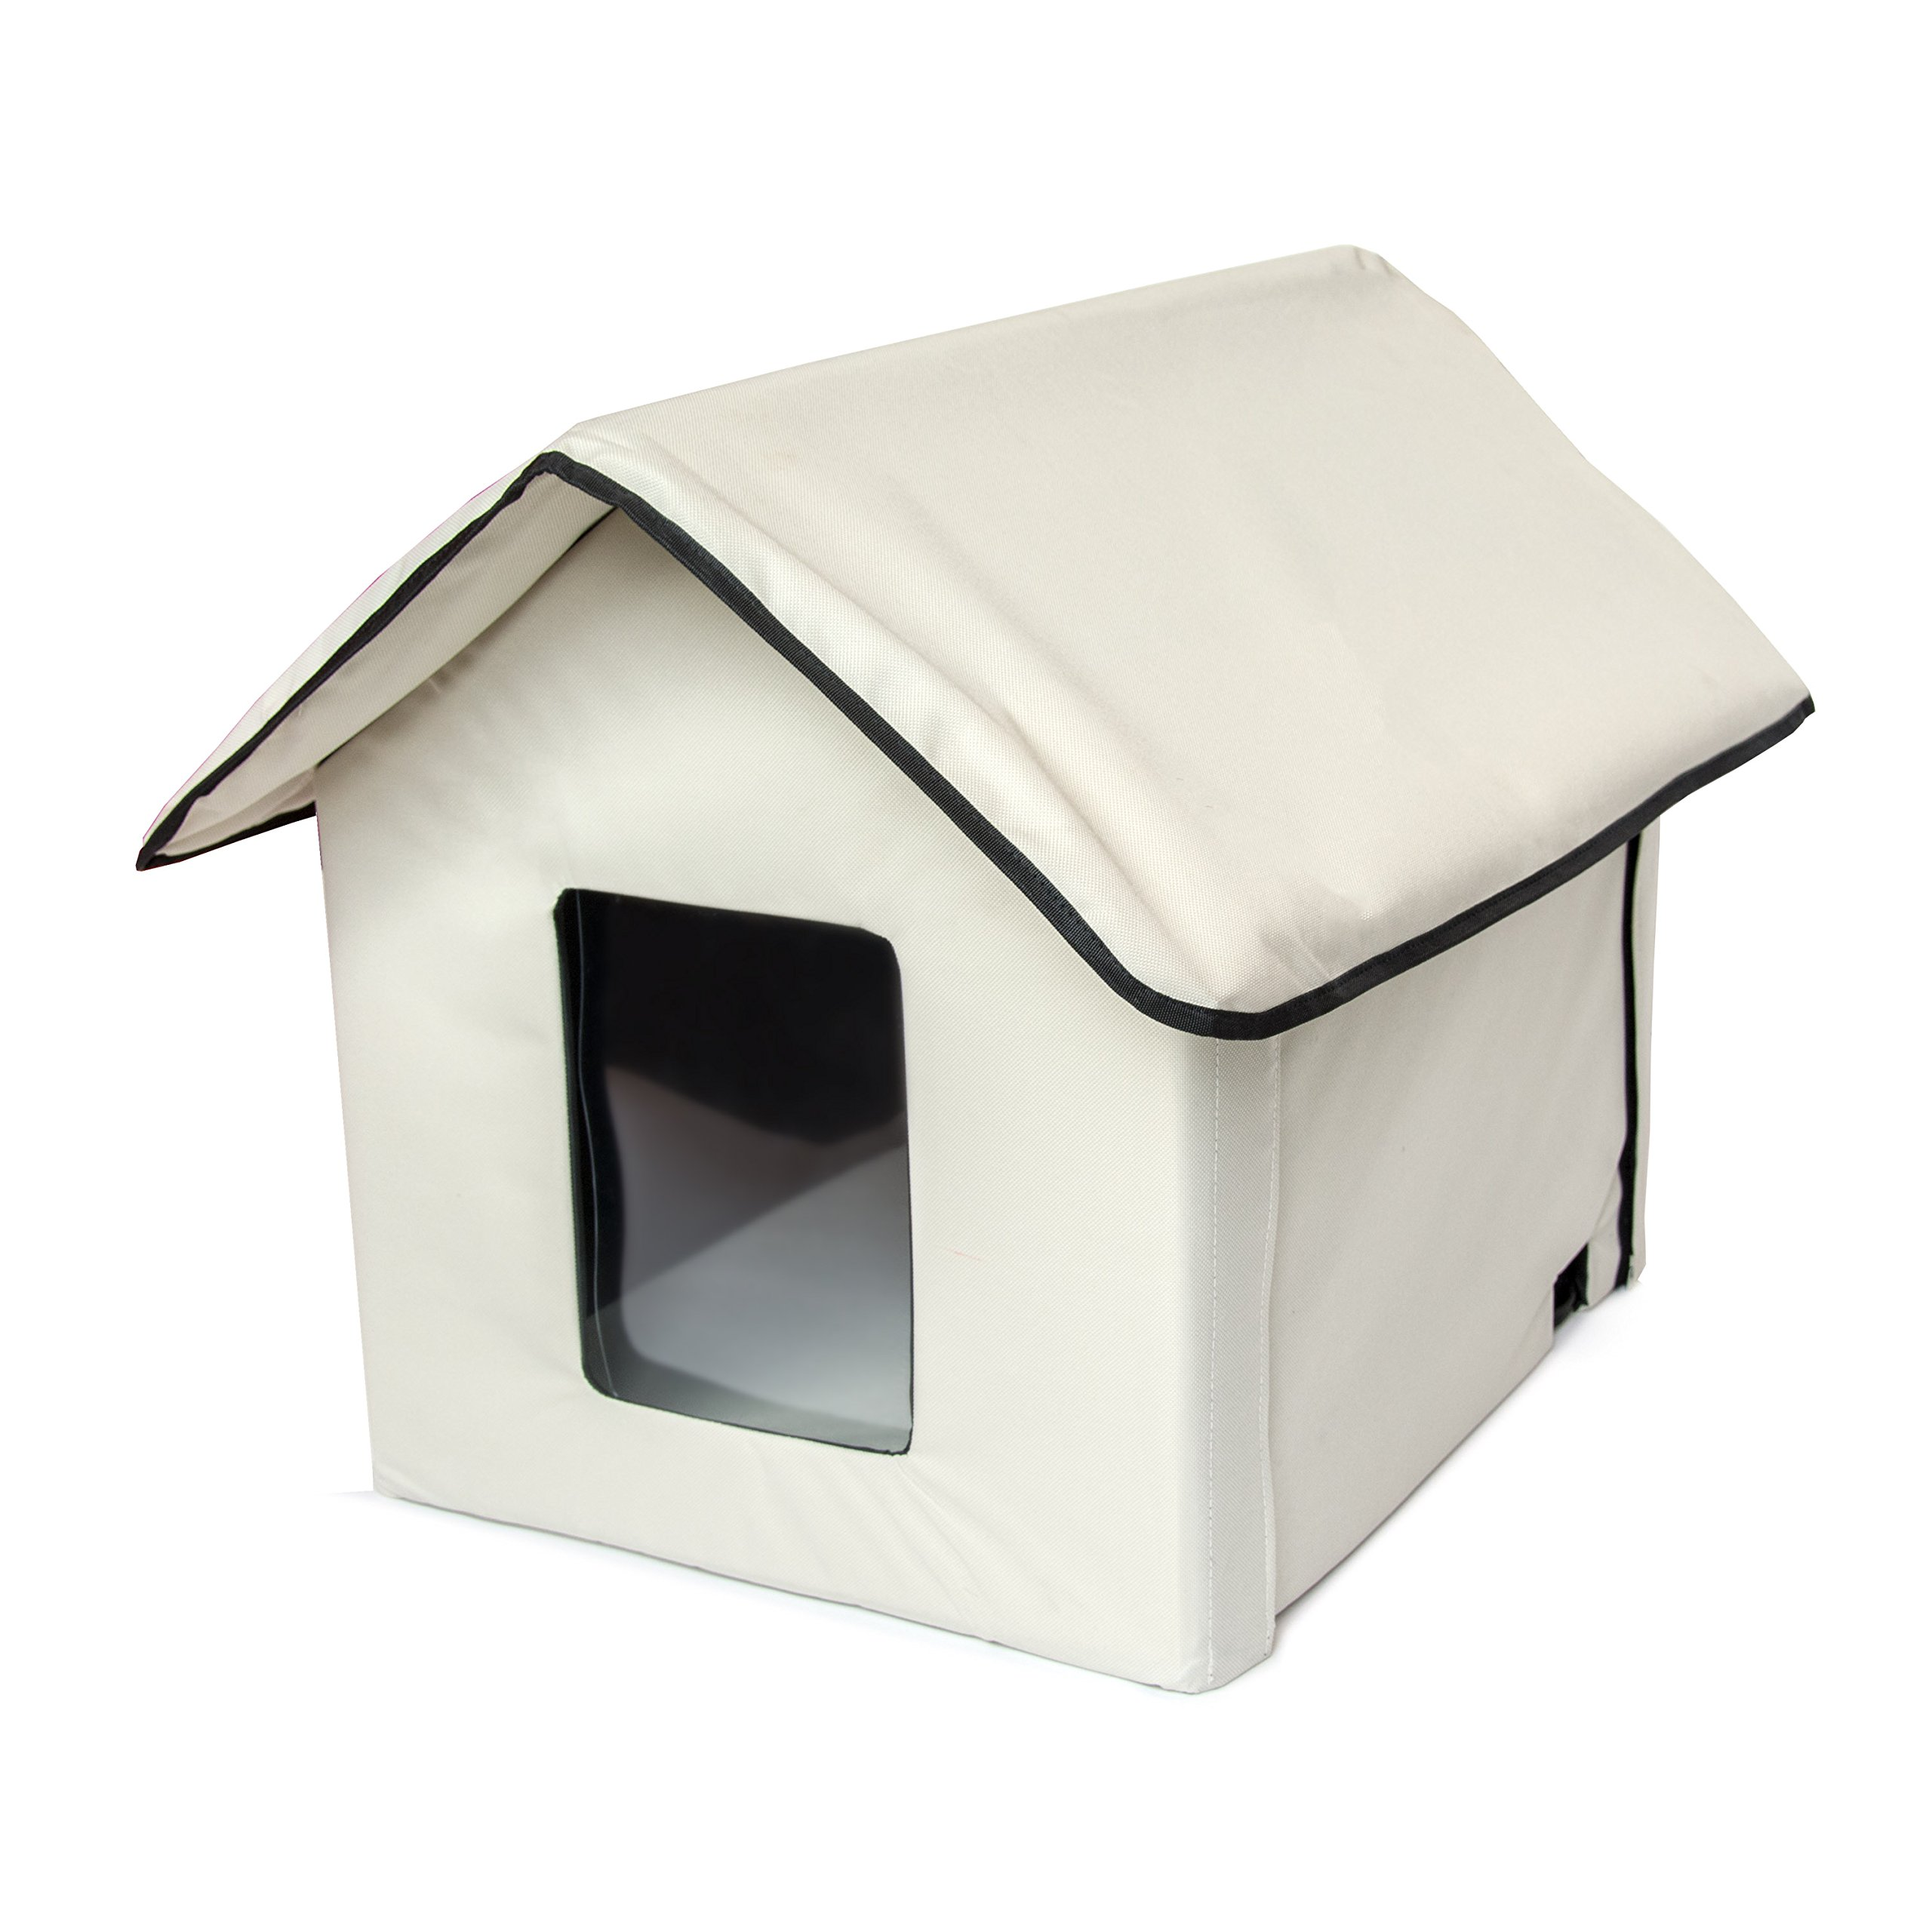 ALEKO PHH01S Portable Outdoor Indoor Pet House Collapsible Dog Cat Shelter Bed